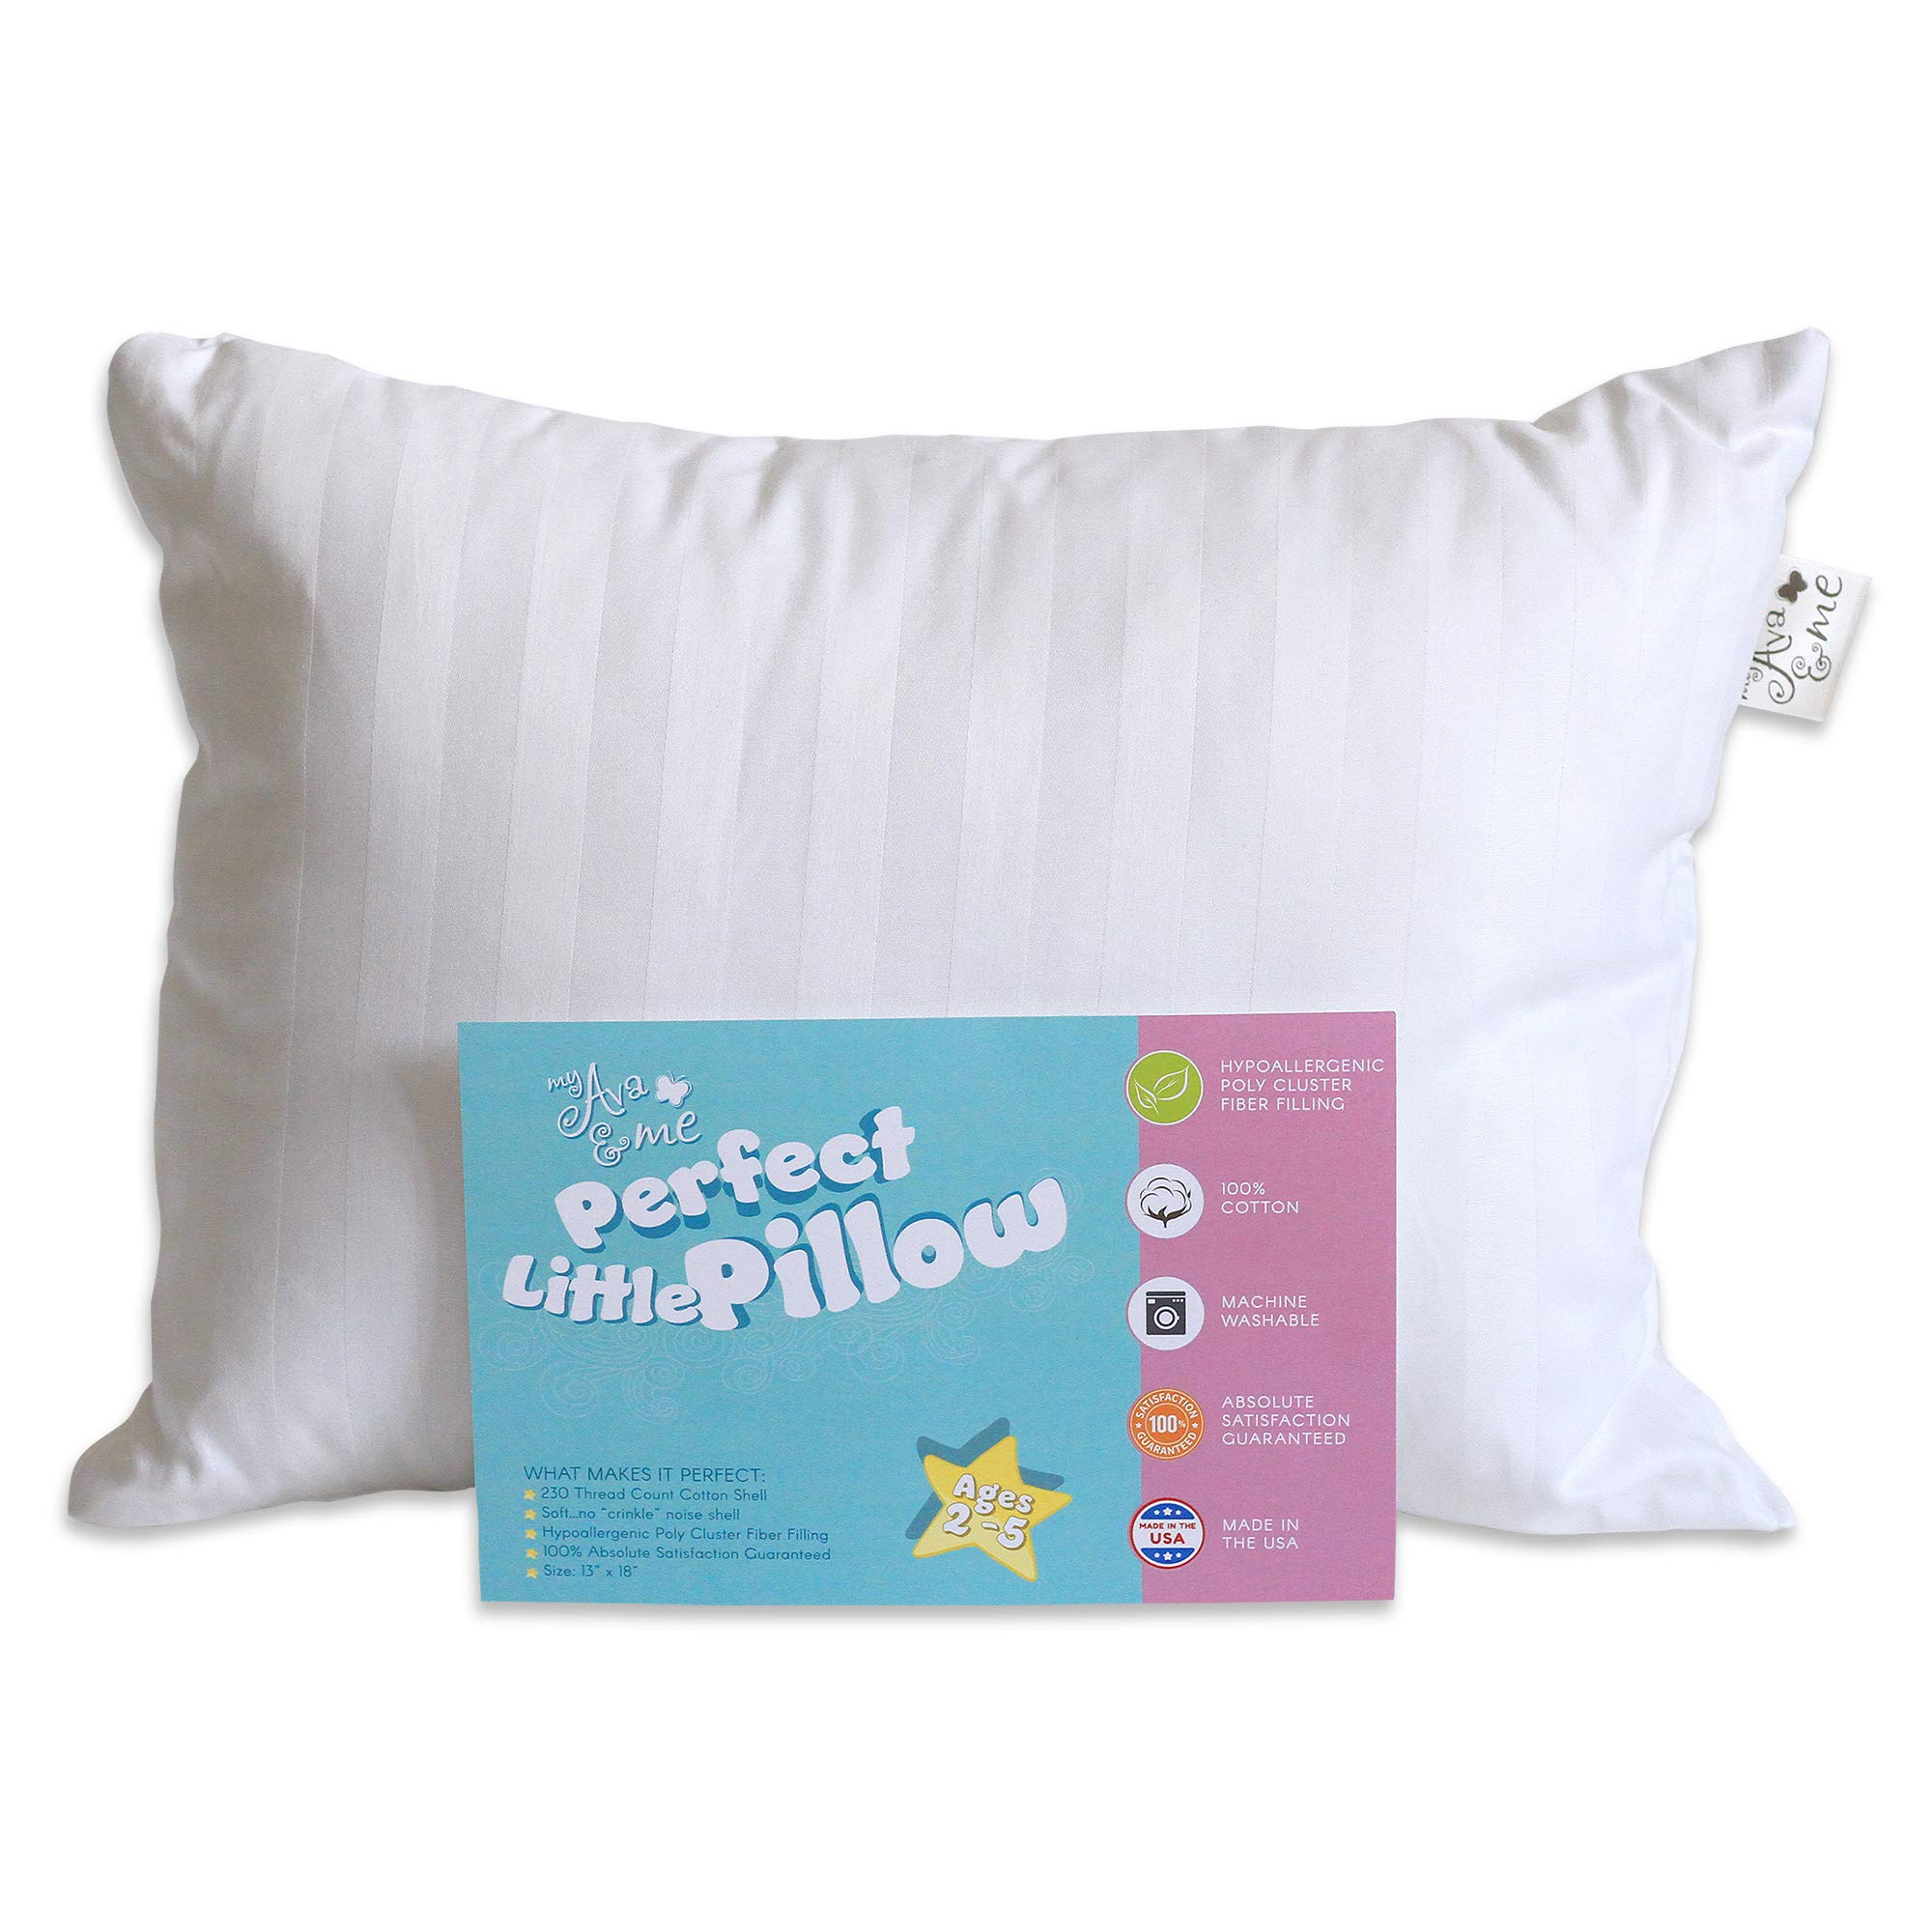 My Ava & Me: Perfect Little Sleep Pillow for Toddlers 13 x 18 Hypoallergenic 100% Cotton Soft No Crinkle Noise by my Ava and Me (Image #1)